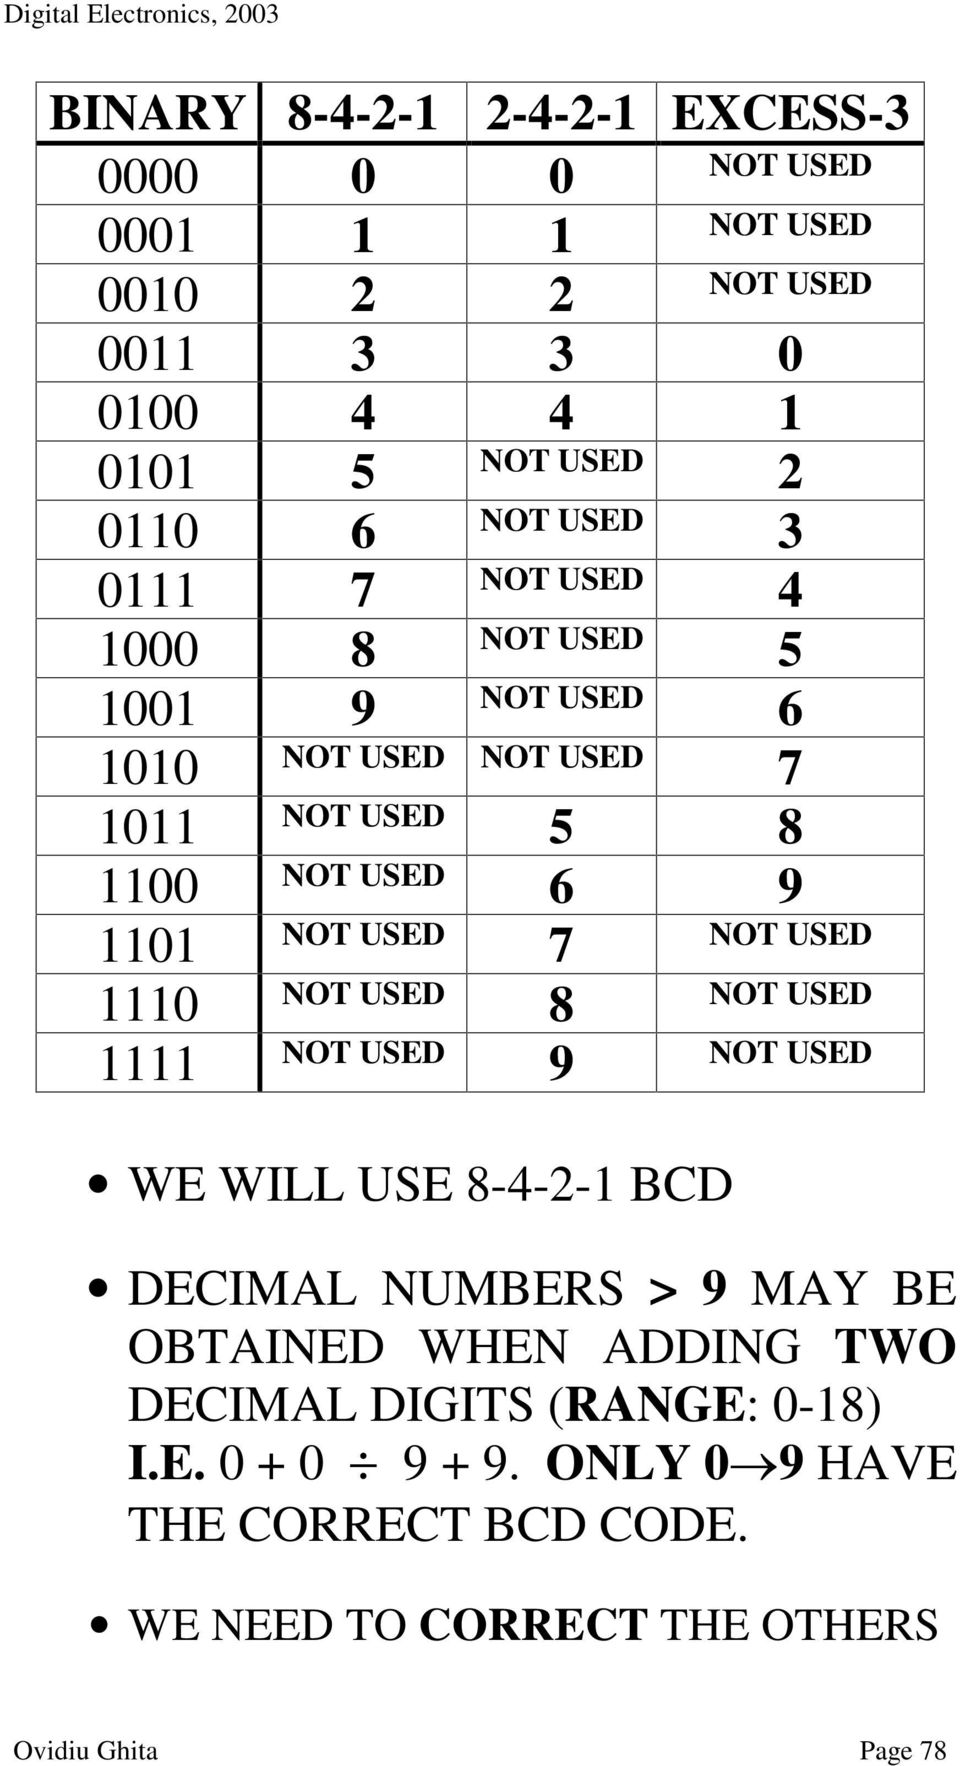 Binary Coded Decimal Bcd Pdf Schematic For Converting Excess 3 To Transcription